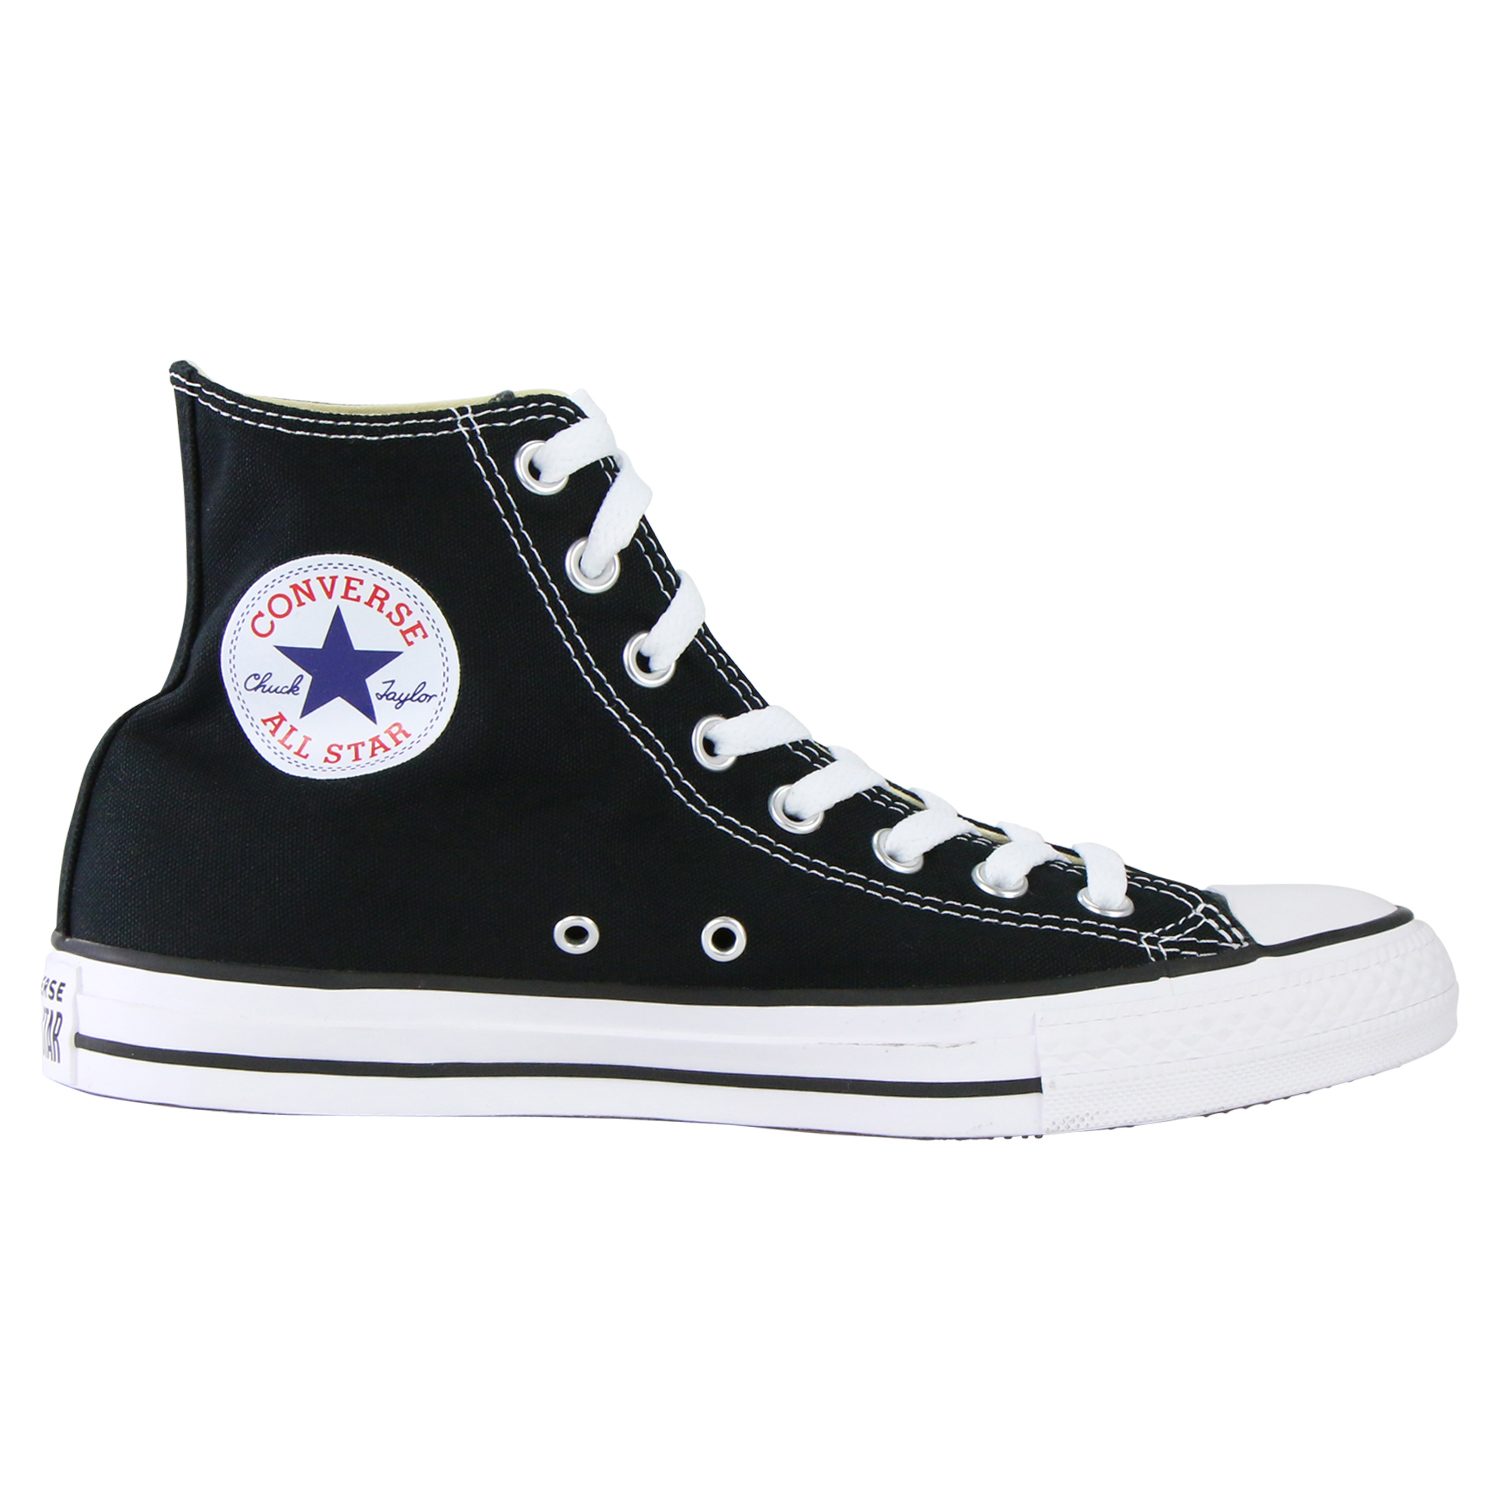 converse chucks all star hi m9160c black canvas schuhe. Black Bedroom Furniture Sets. Home Design Ideas